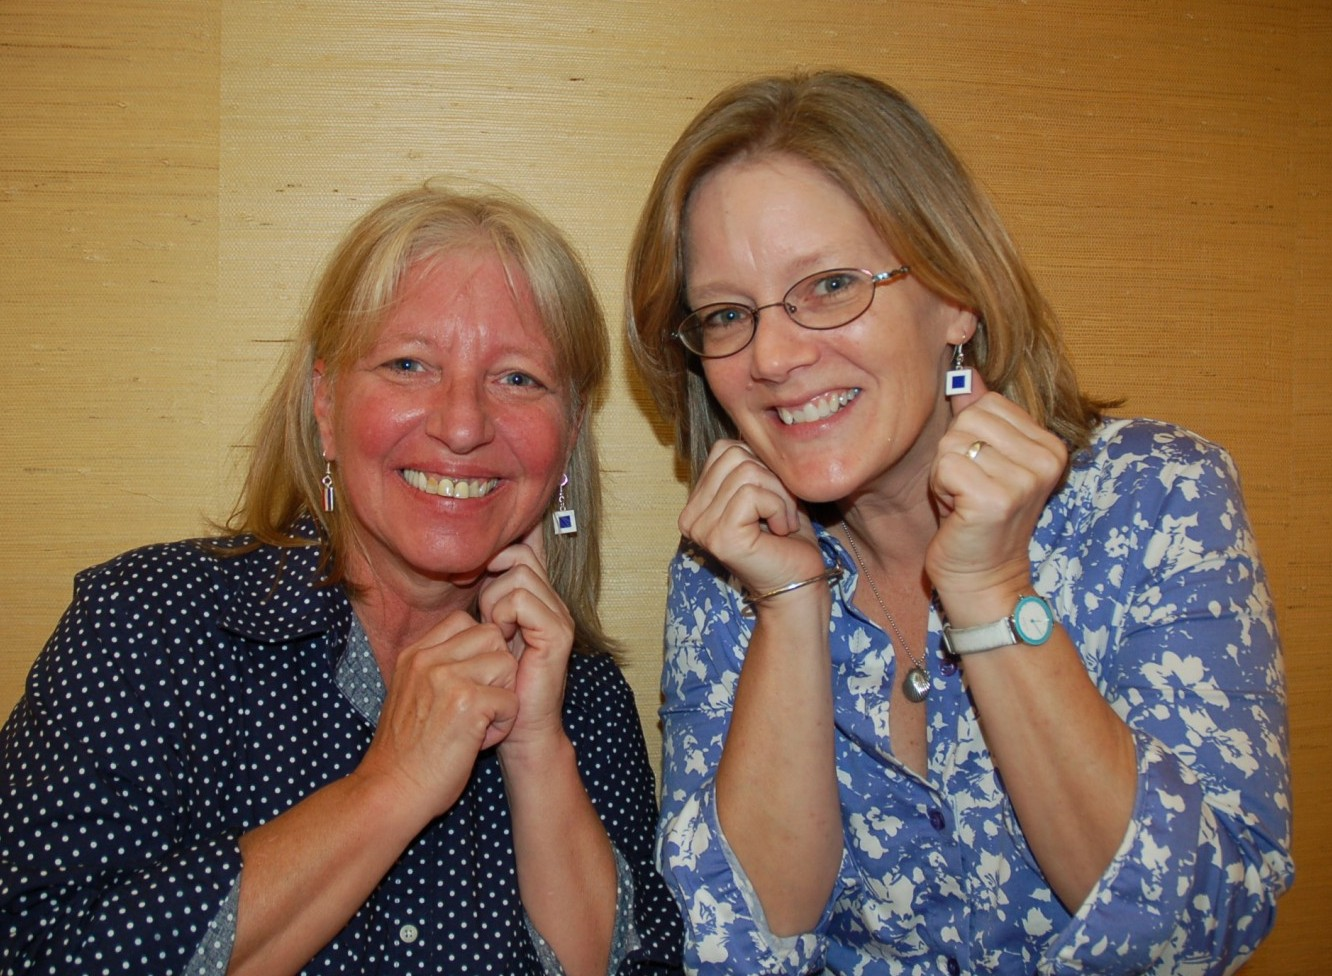 Sisters Marianne and Gail Vanstone launched Tango Sierra, a South Florida-based international fuel agency. PHOTO BY DORIE COX